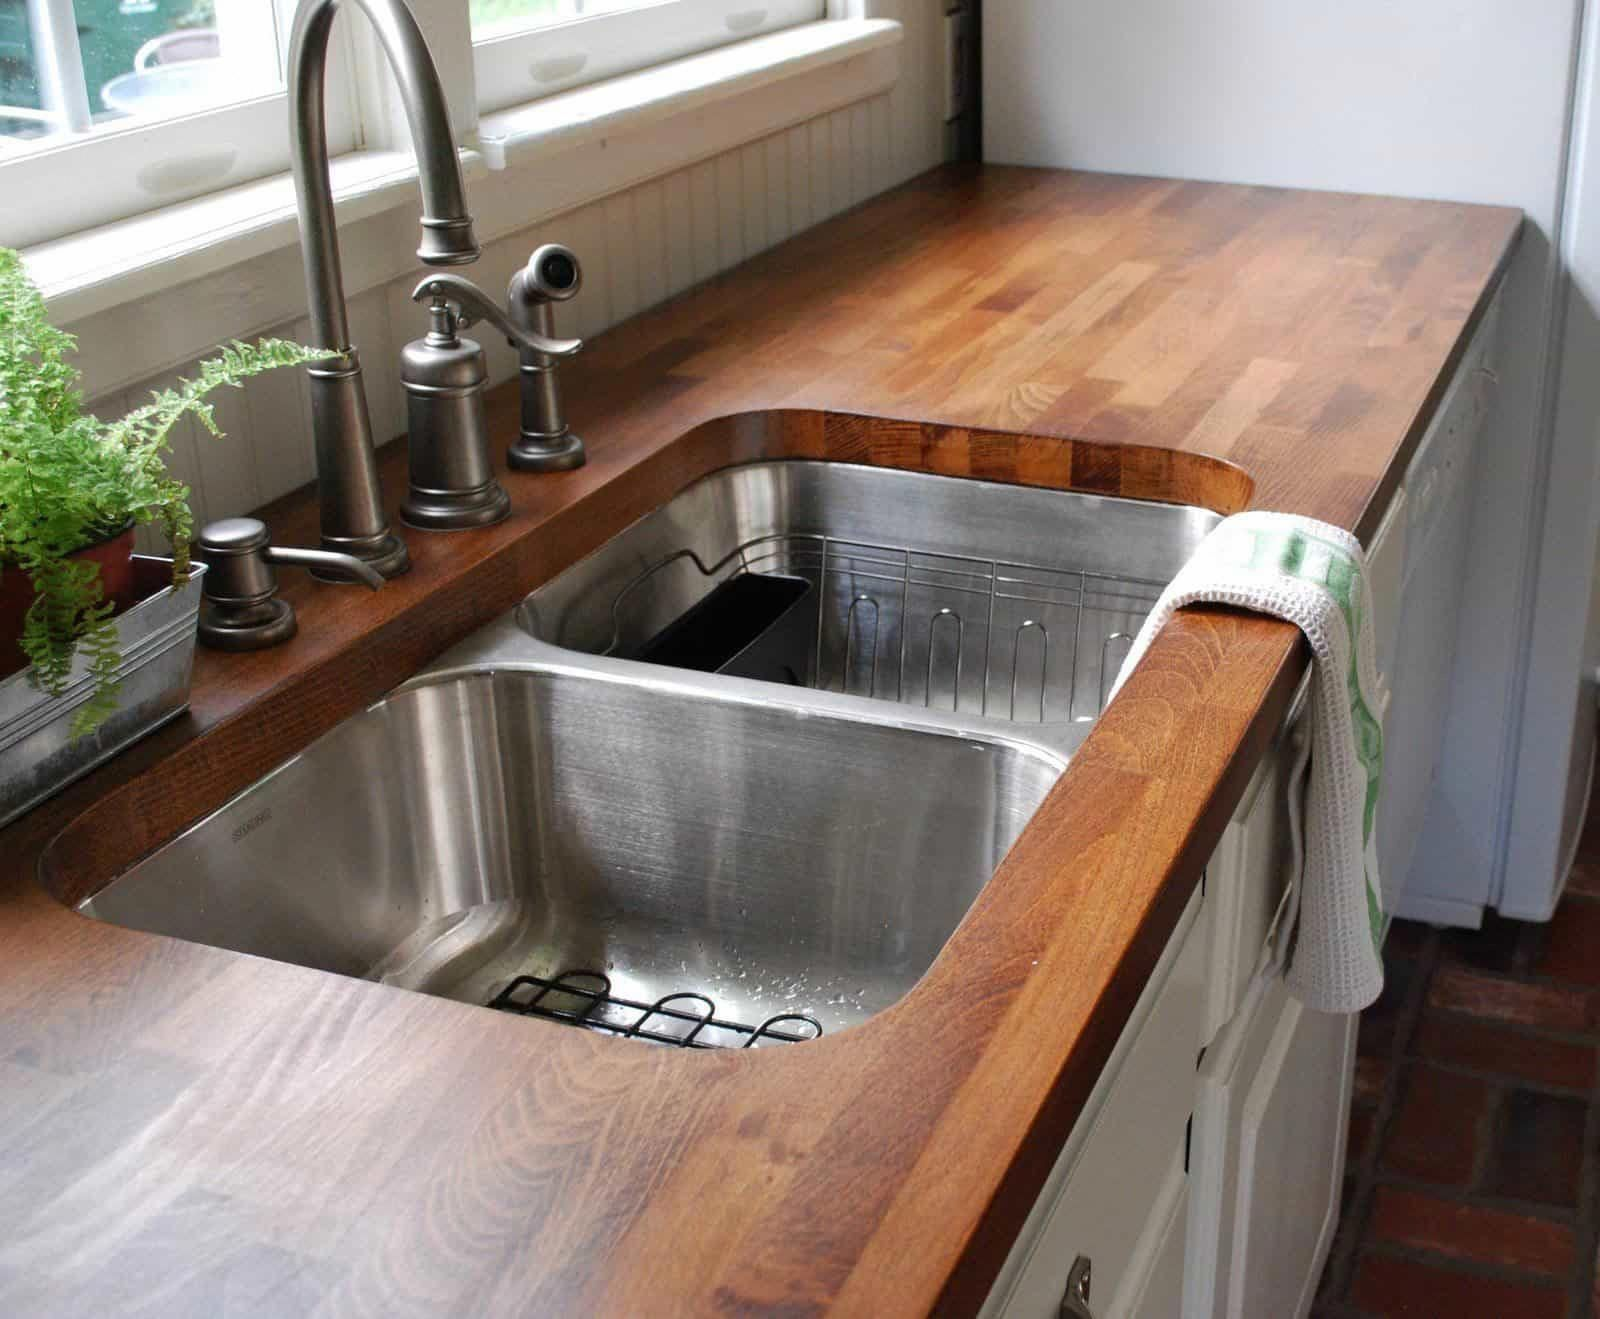 Pros And Cons Of Kitchen Butcher Block Countertops Kitchen Countertops Laminate Diy Wood Countertops Countertop Design